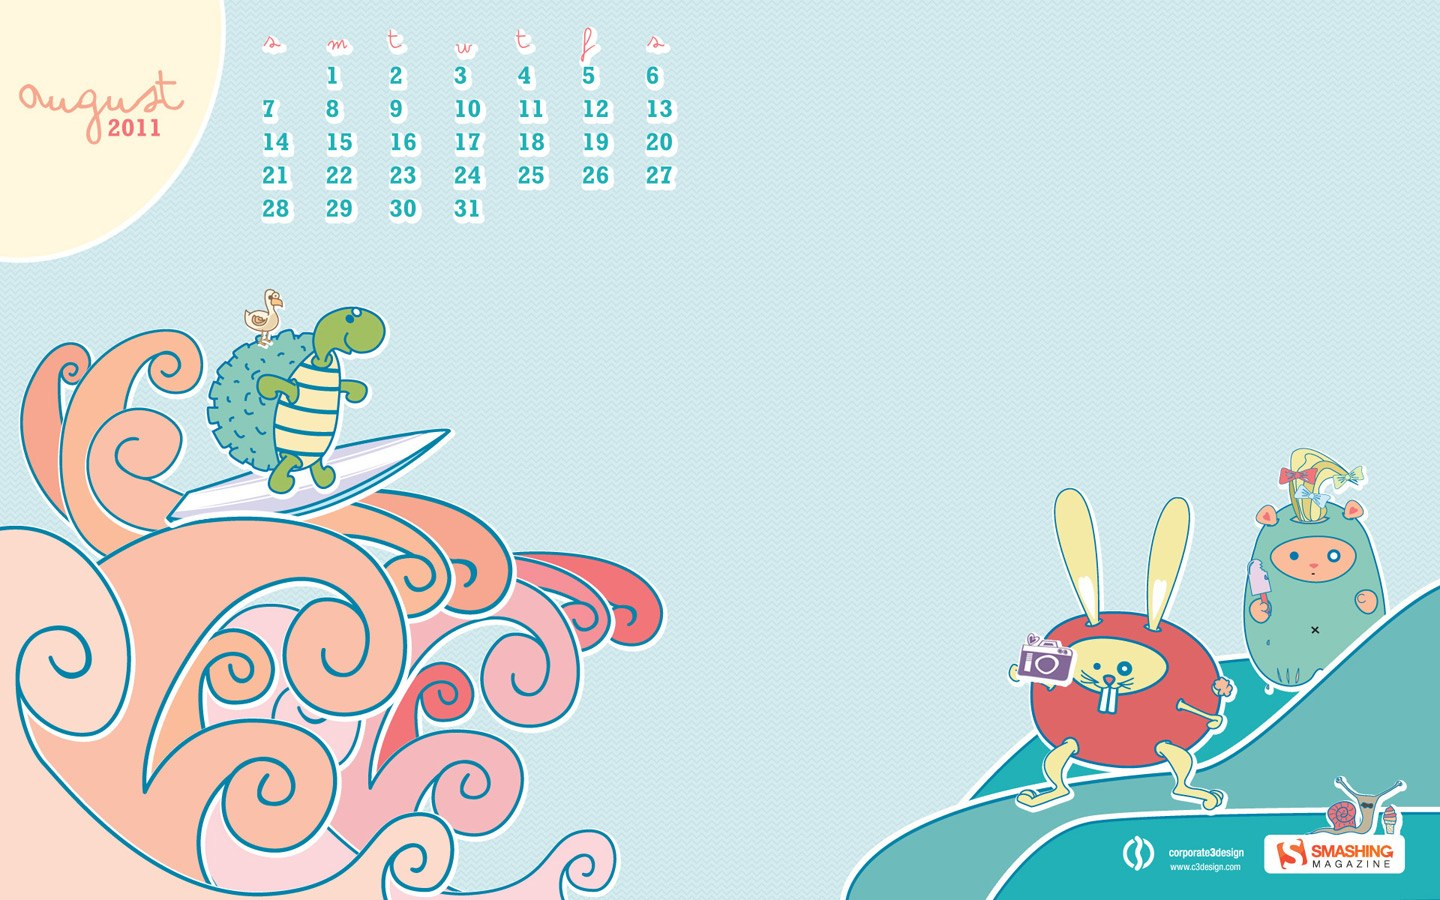 In January Calendar Wallpaper 29869